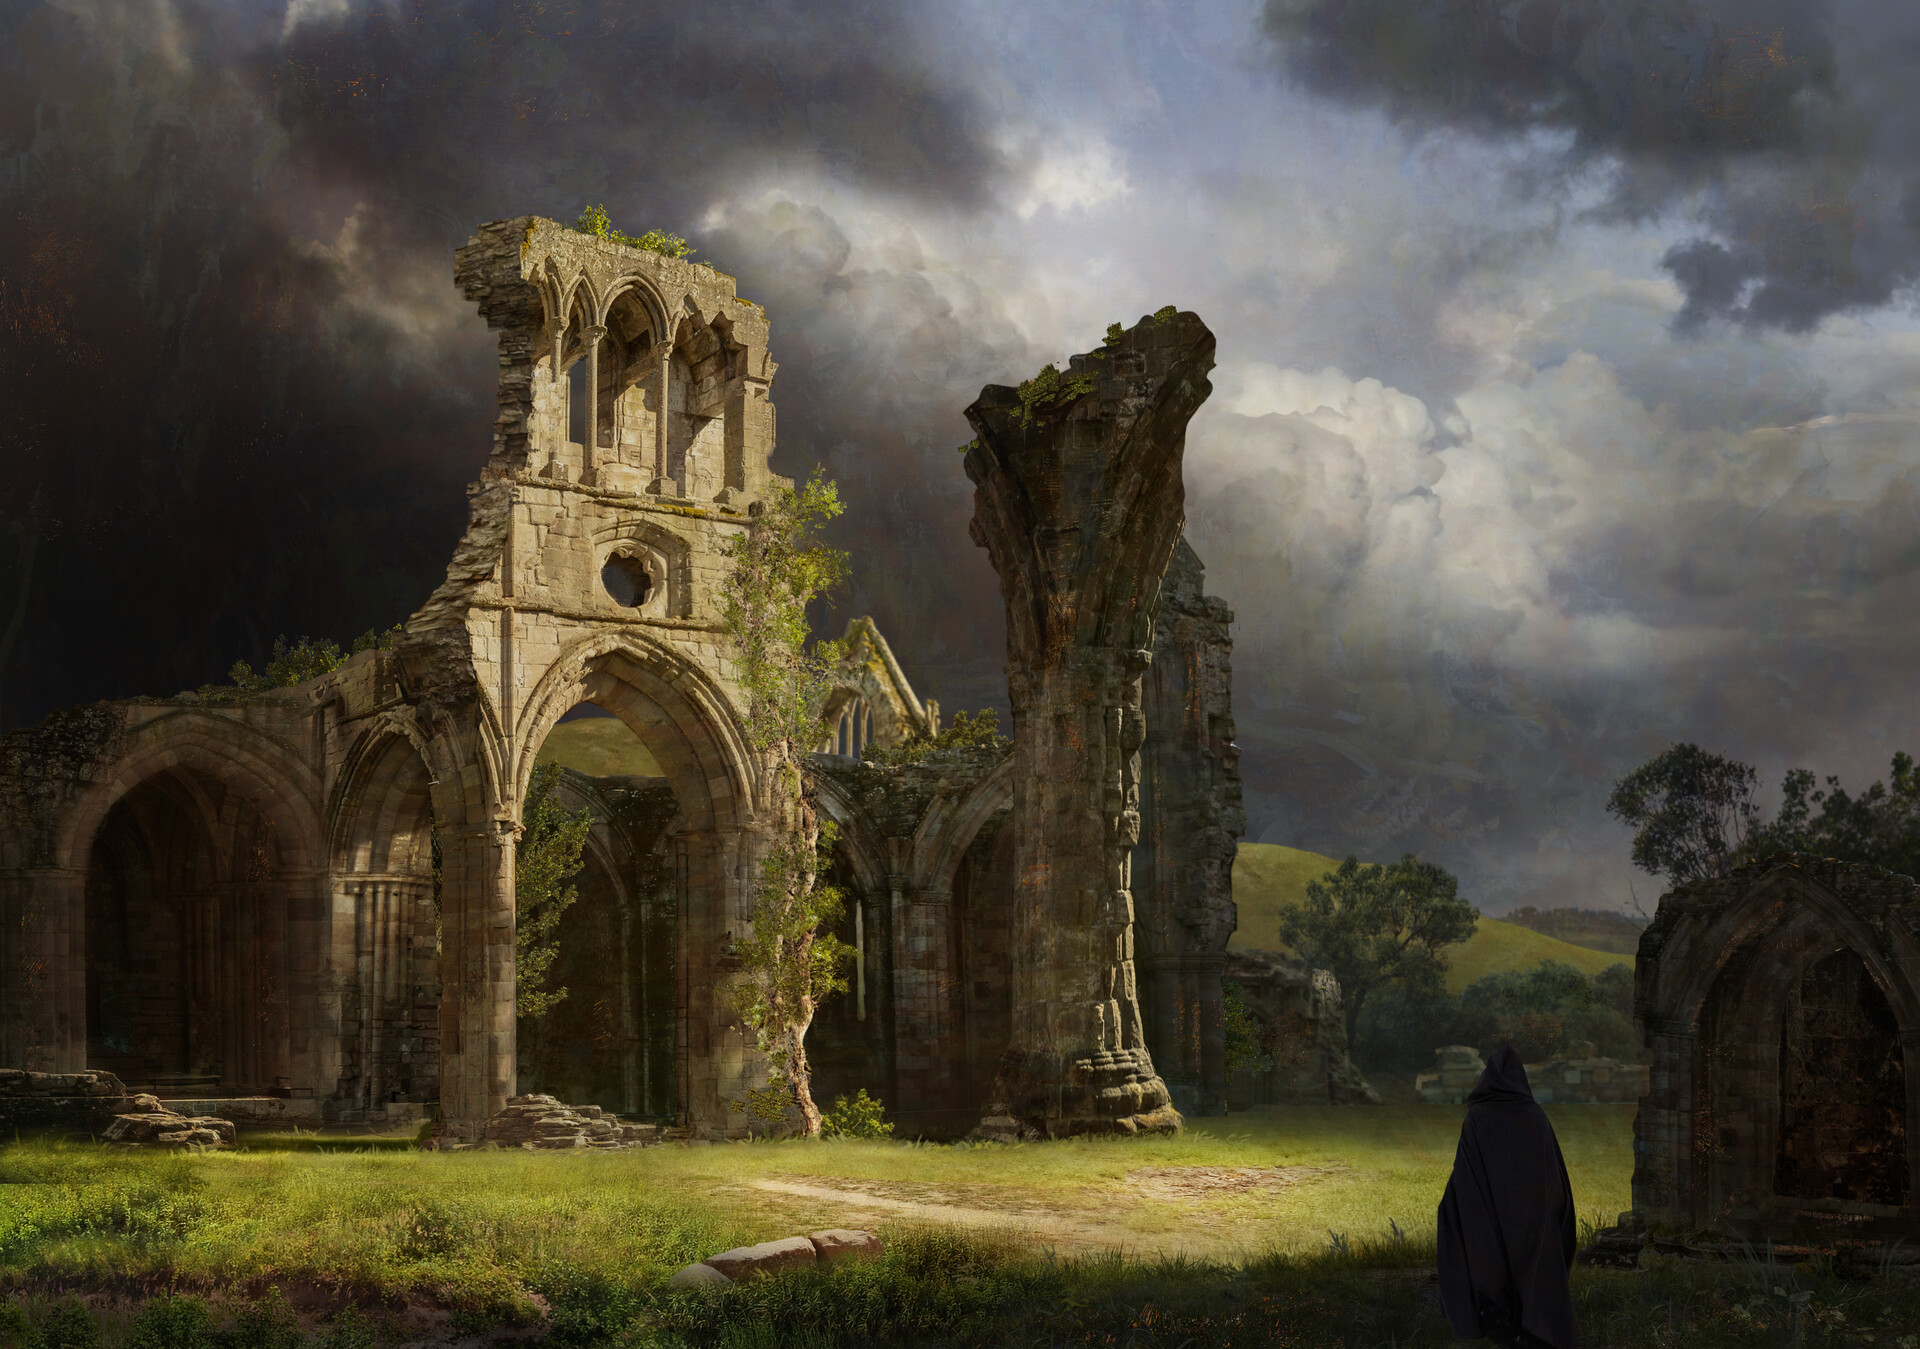 General 1920x1349 nature ruins castle sky clouds Gothic architecture artwork ruin Andrey Bakulin trees digital art arch abandoned Abbey cathedral